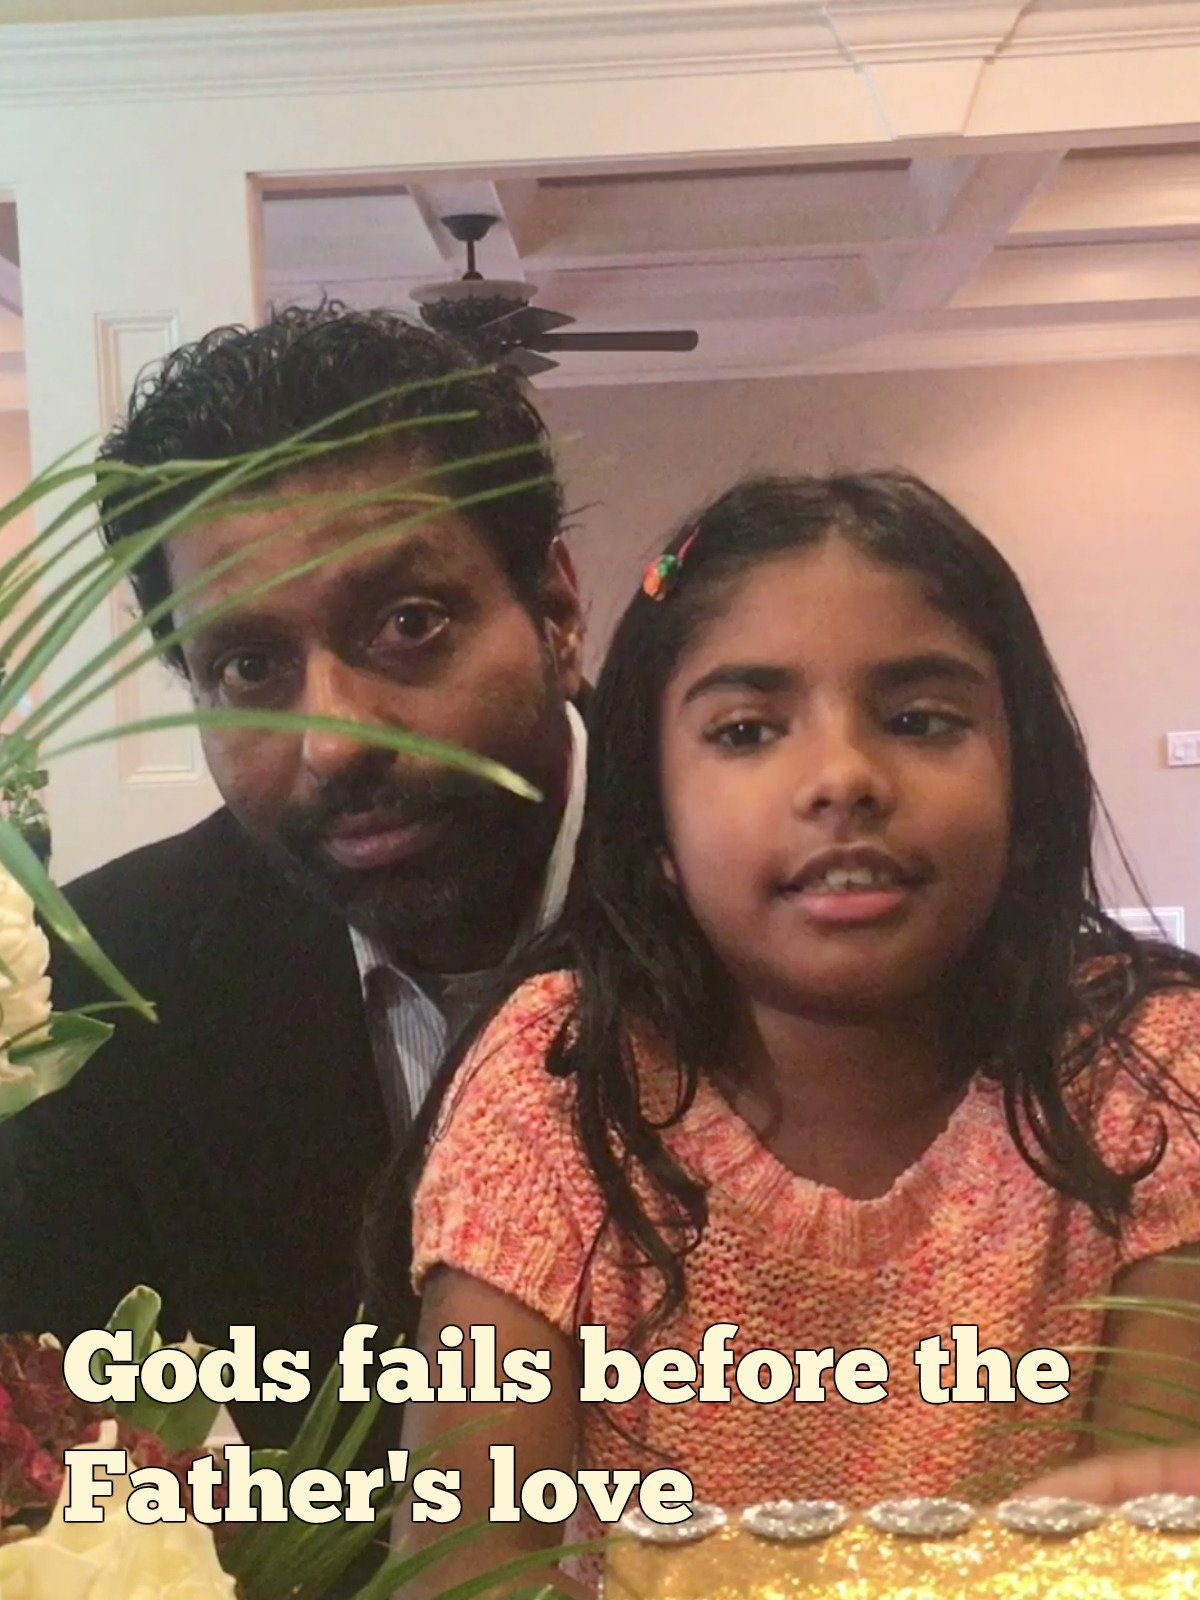 Gods fails before the Father's love